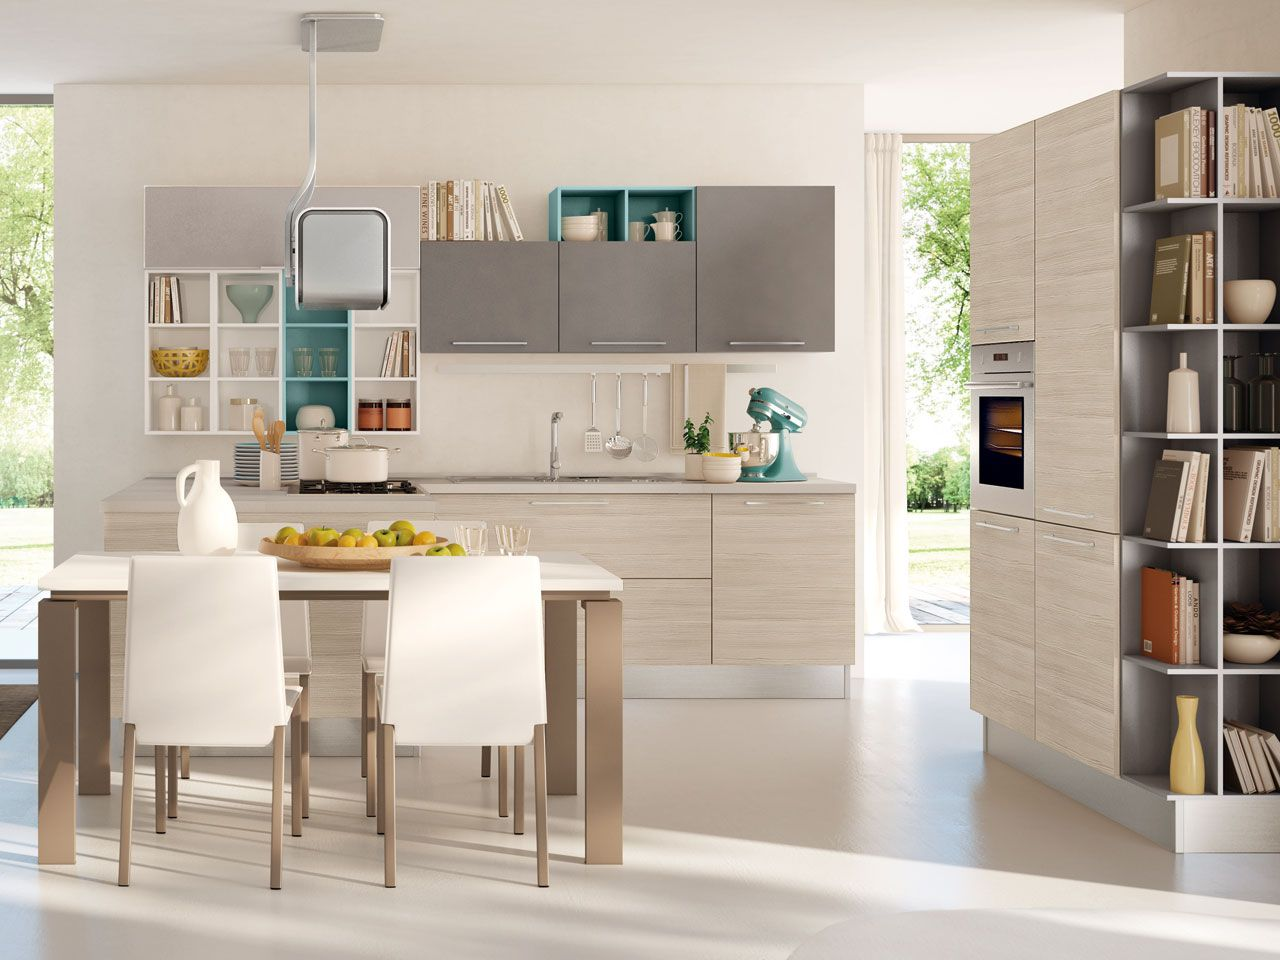 Swing cucine lube la nostra for the home nel 2019 kitchen kitchen design e kitchen - Cucine lube prezzi 2016 ...